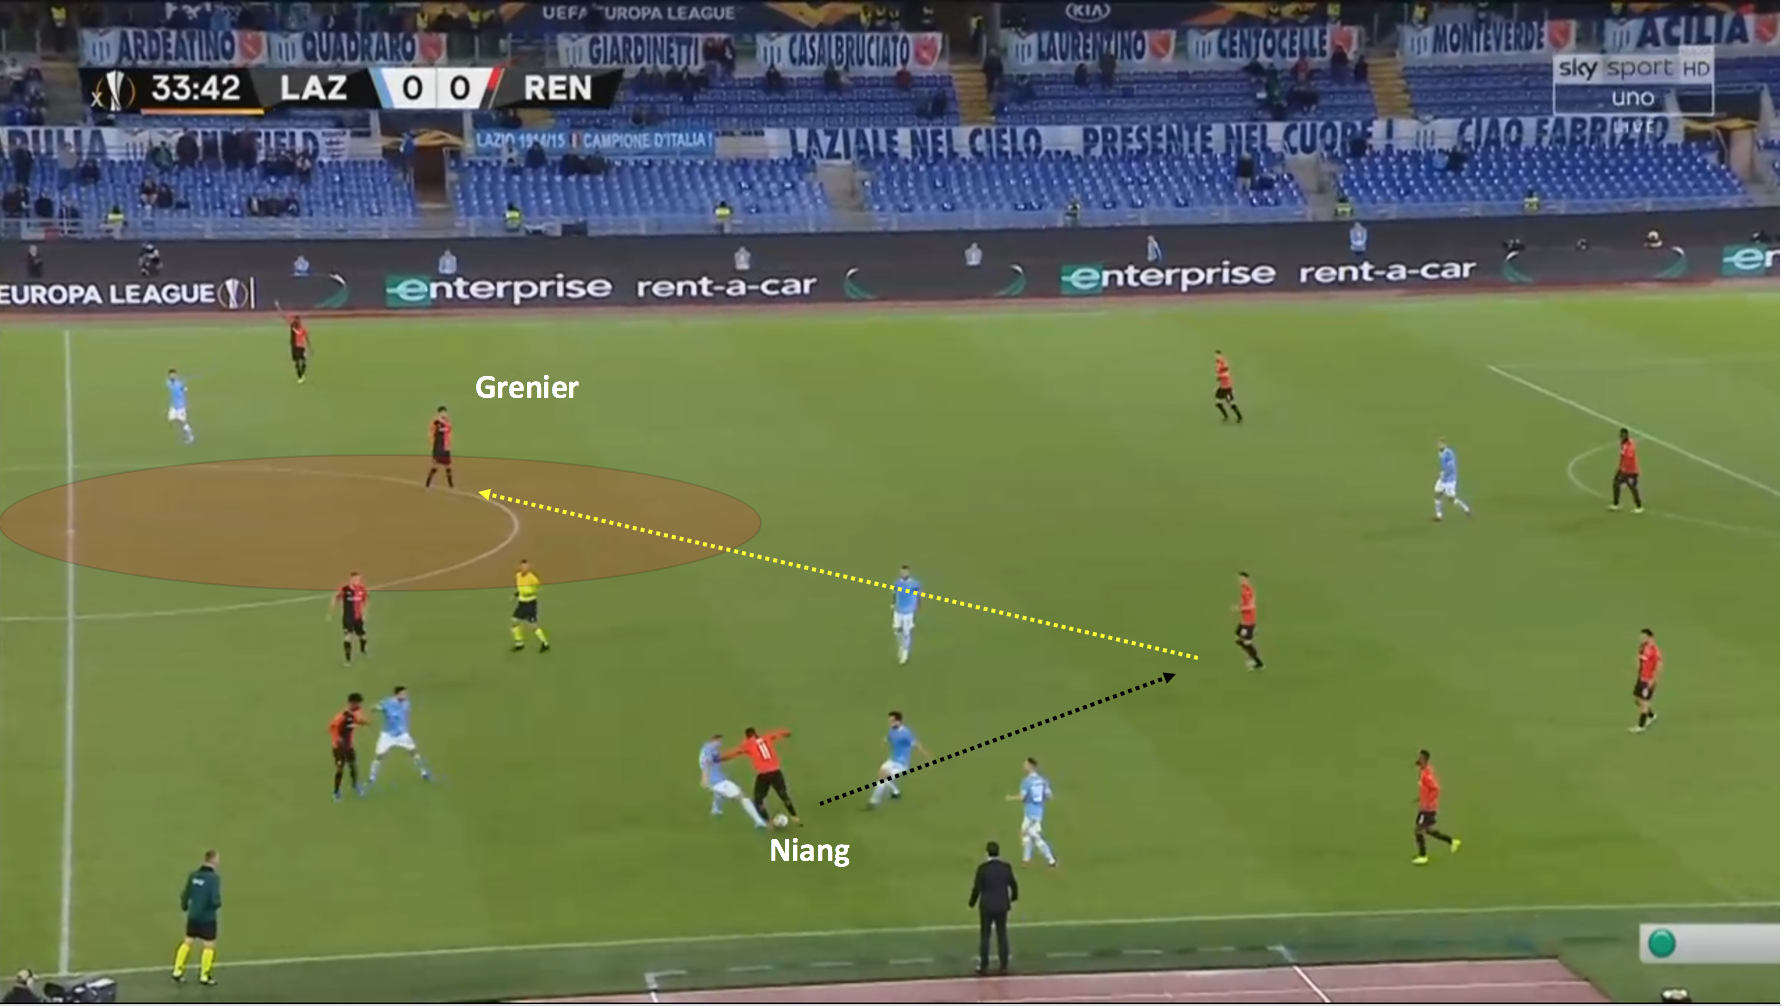 Europa League 2019/20: Lazio vs Rennes - tactical analysis tactics